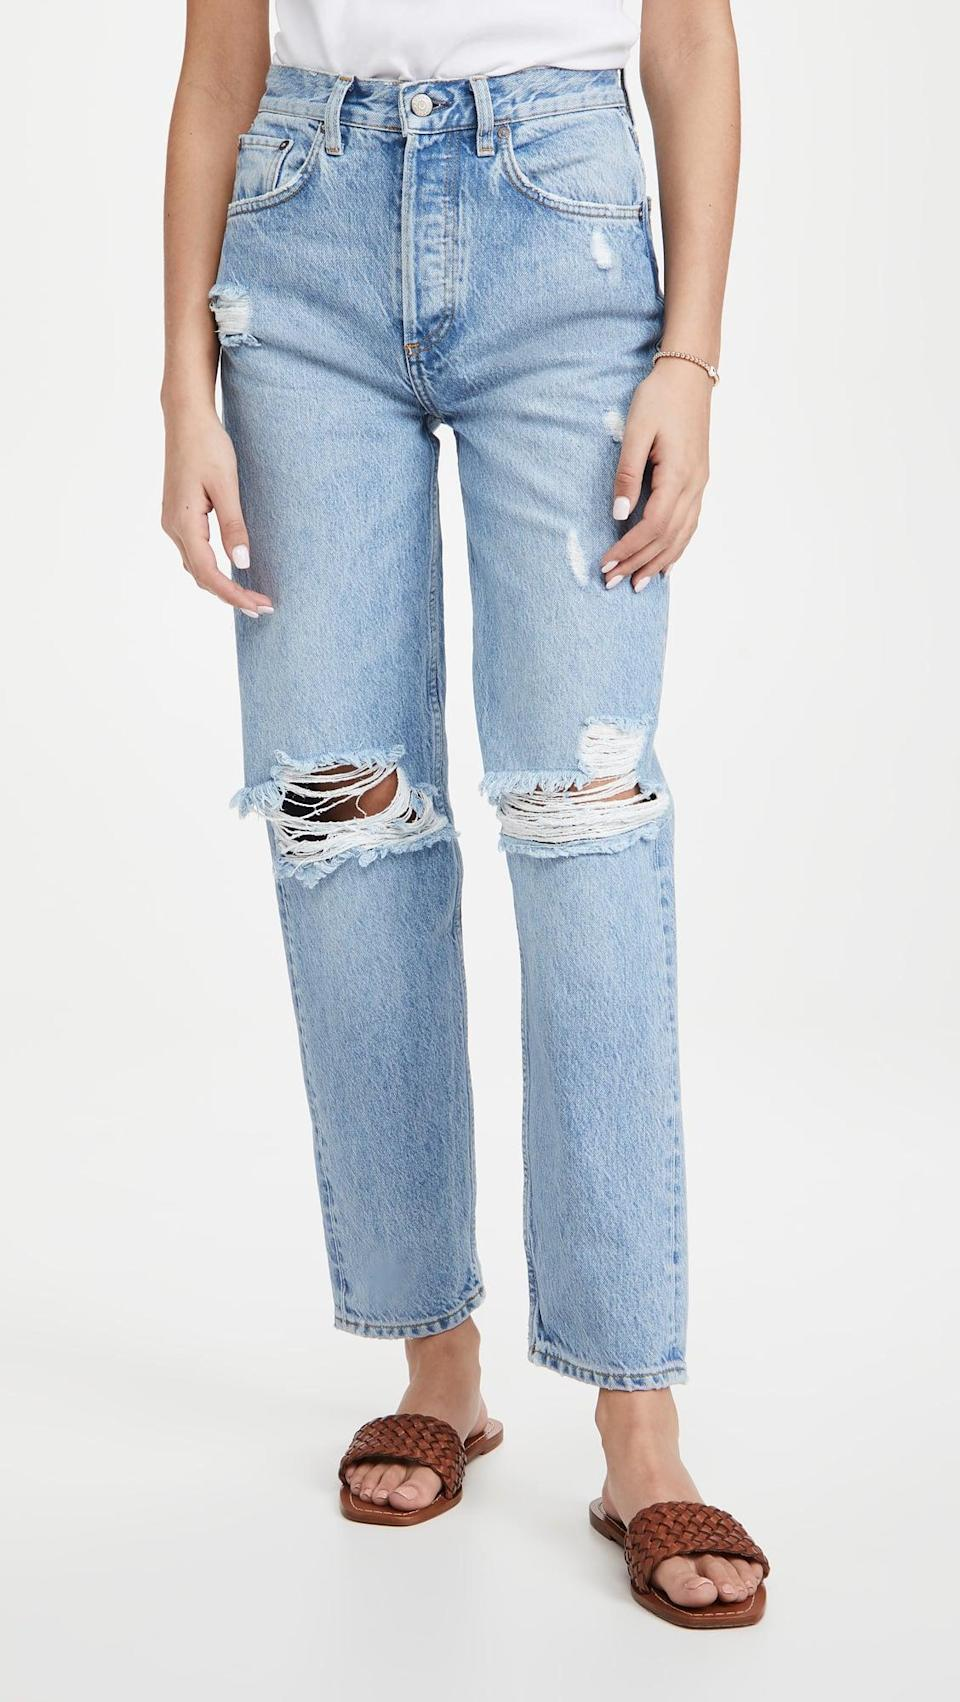 <p>Did you know that jeans use up to 1,800 gallons of water to make one pair? Well, Boyish uses one-third the amount of water of regular denim, and it recycles all its water so no water is polluted in the process.</p> <p><strong>What We'd Buy</strong>: <span>Boyish Toby Relaxed Jeans</span> ($168.00)</p>